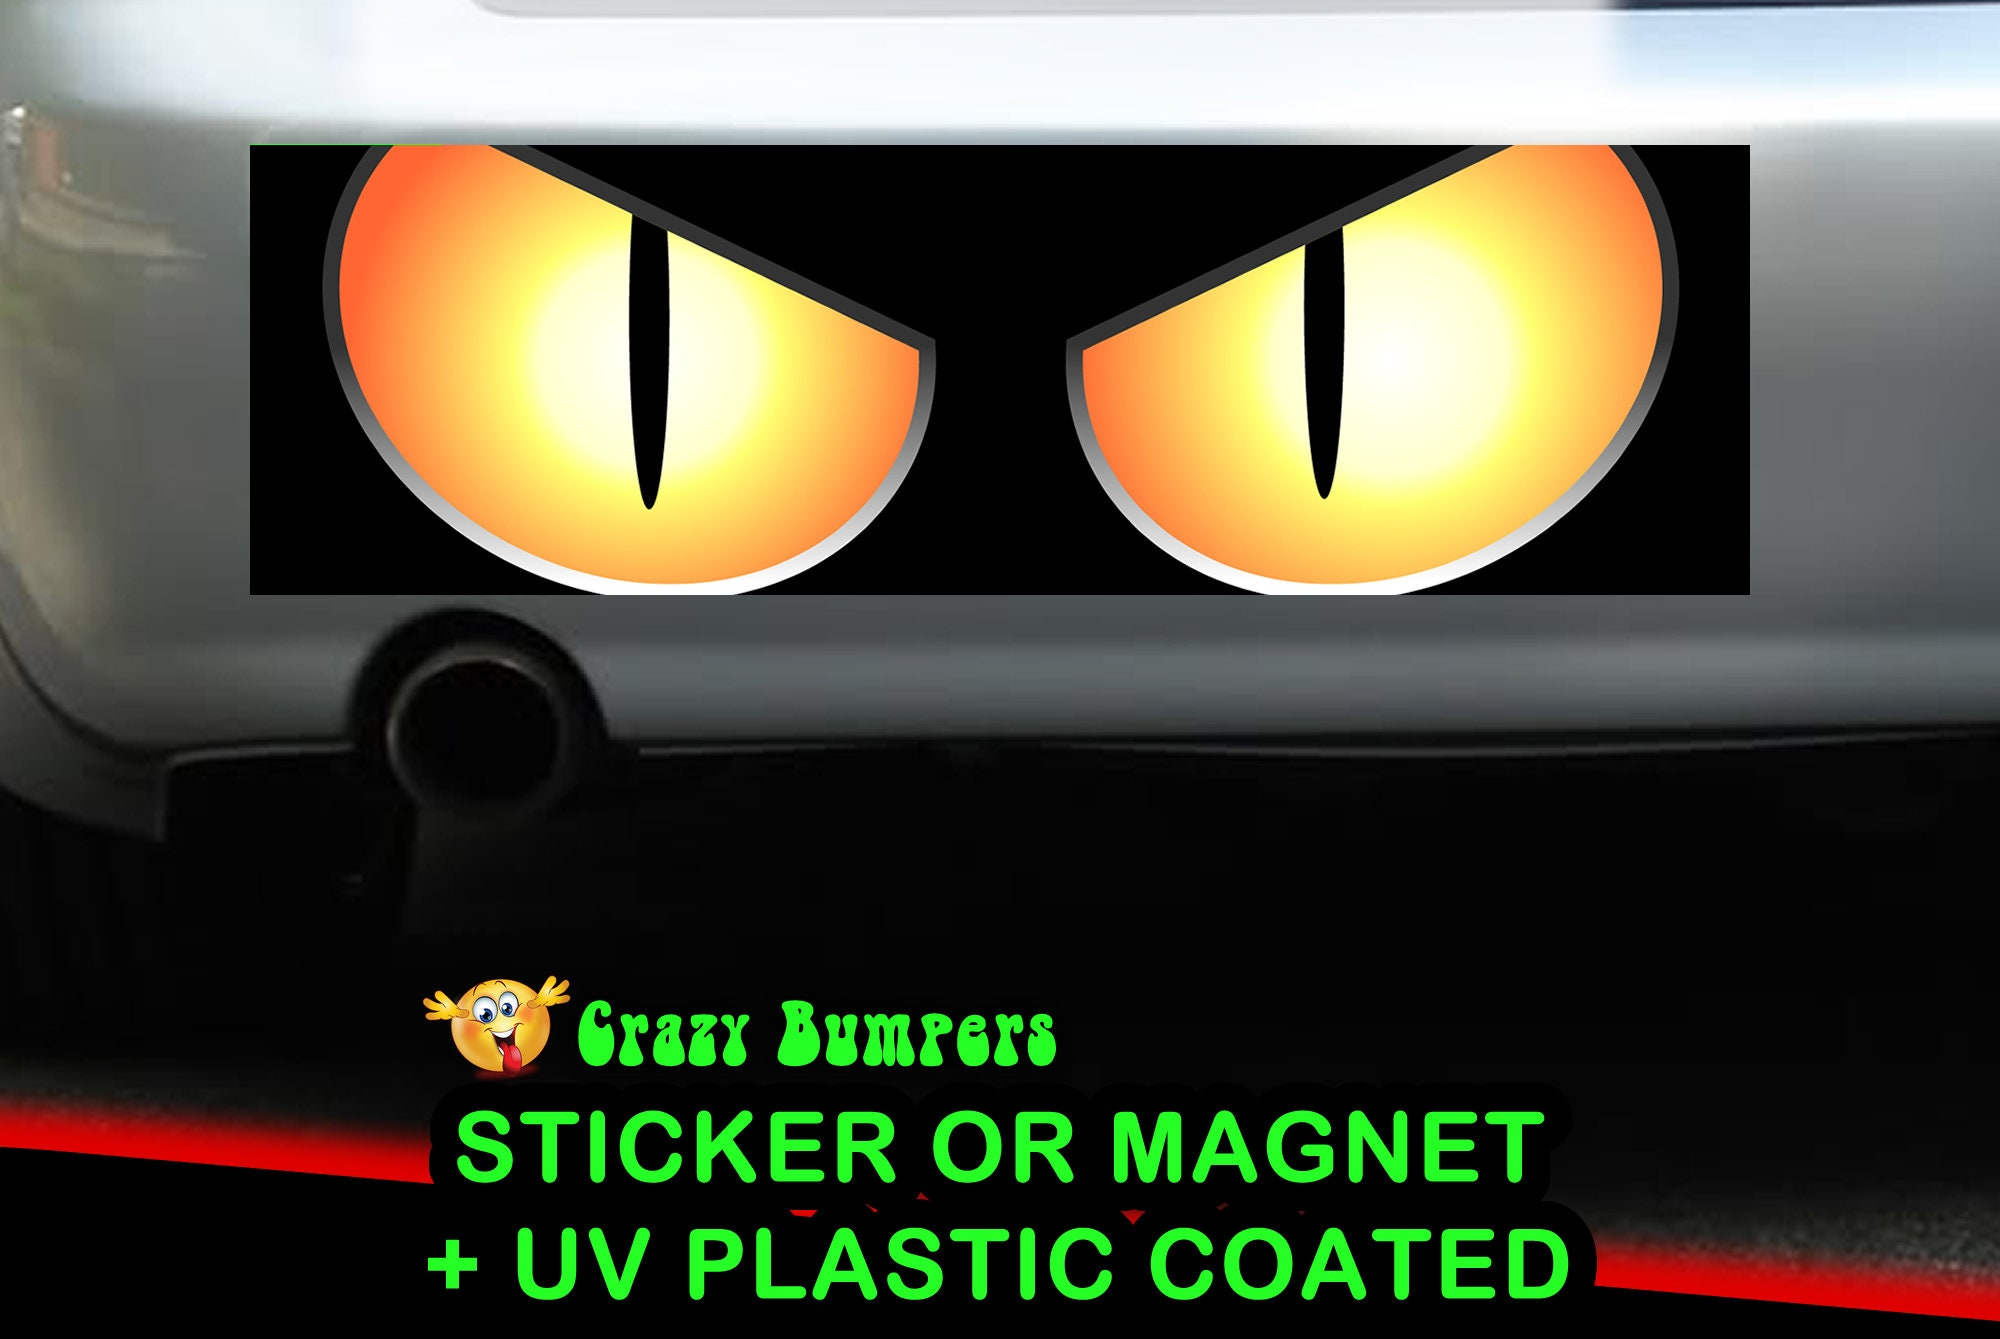 CAD$9.74 - Mad cat eyes Bumper Sticker 10 x 3 Bumper Sticker or Magnetic Bumper Sticker Available